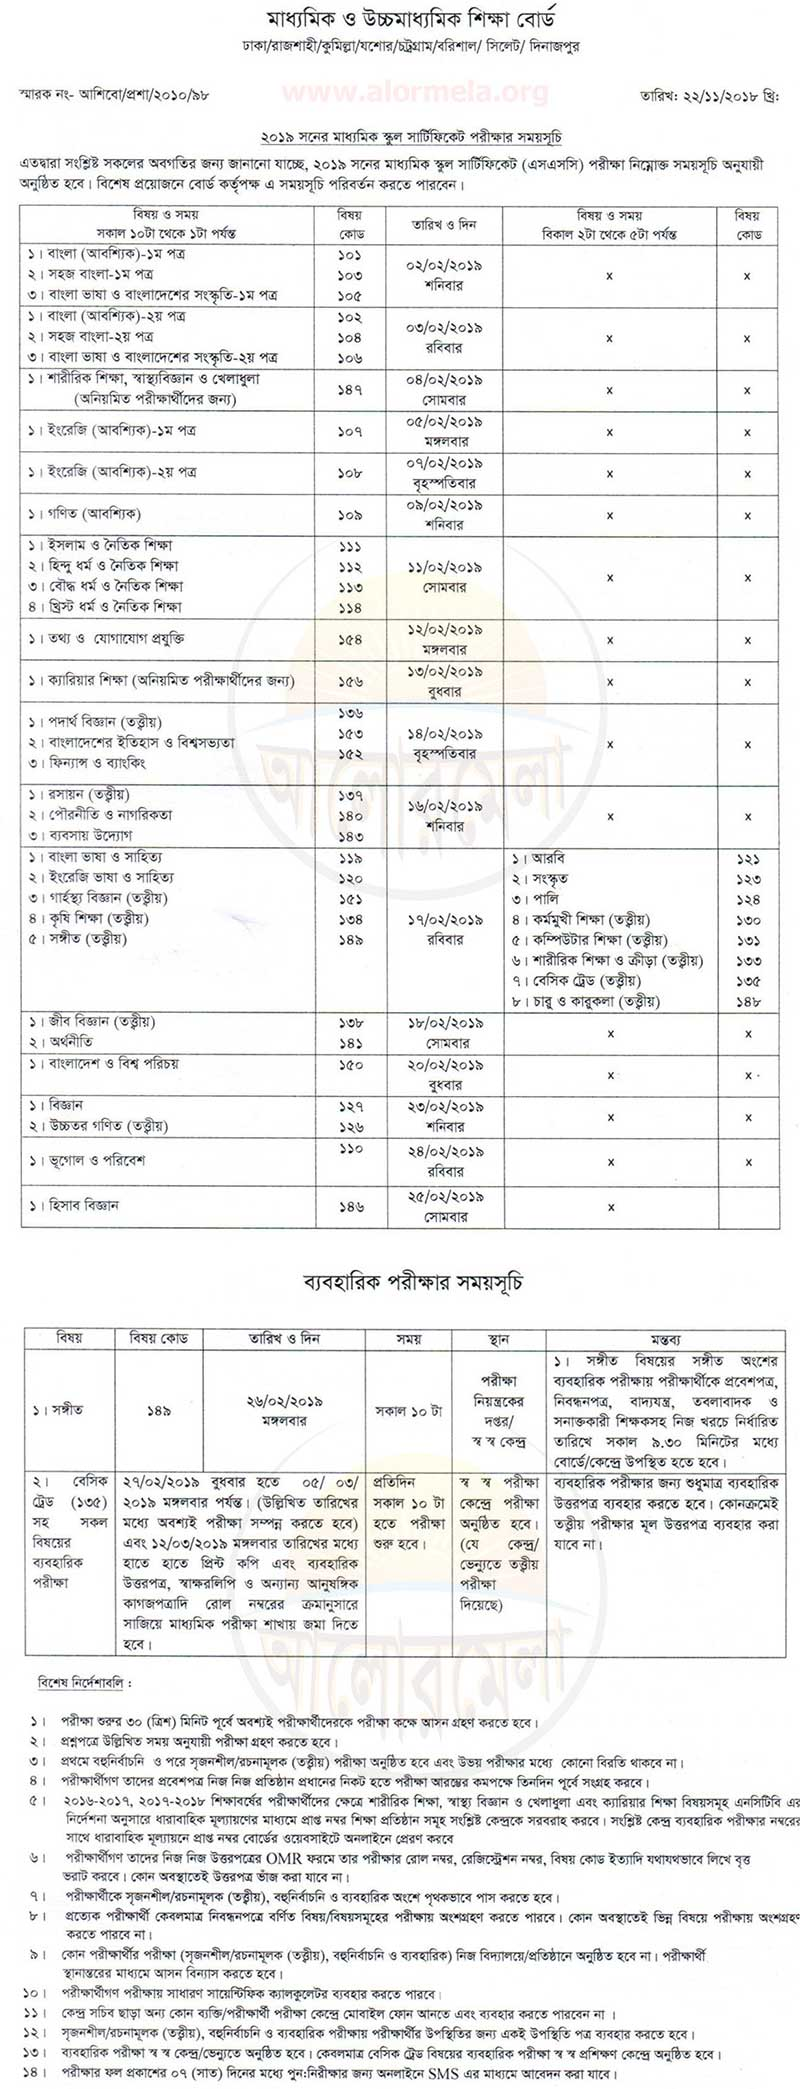 Bangladesh Education Board SSC Exam Routine 2019